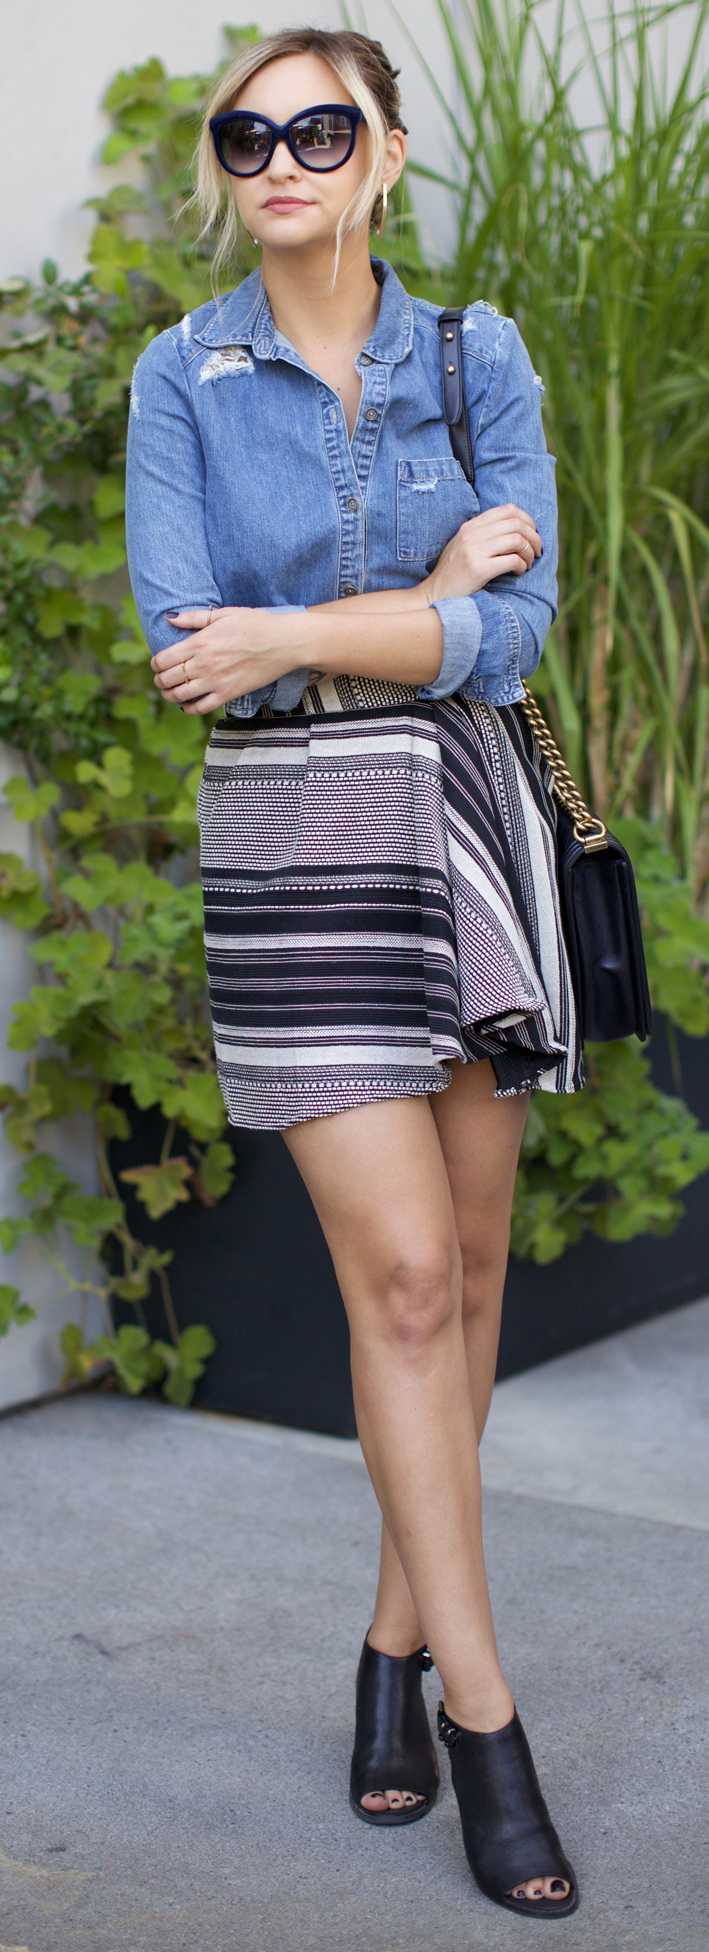 Top – Paige, skirt – Marissa Webb, shoes – c/o Kenneth Cole, sunglasses – Italia Independent, bag – Chanel